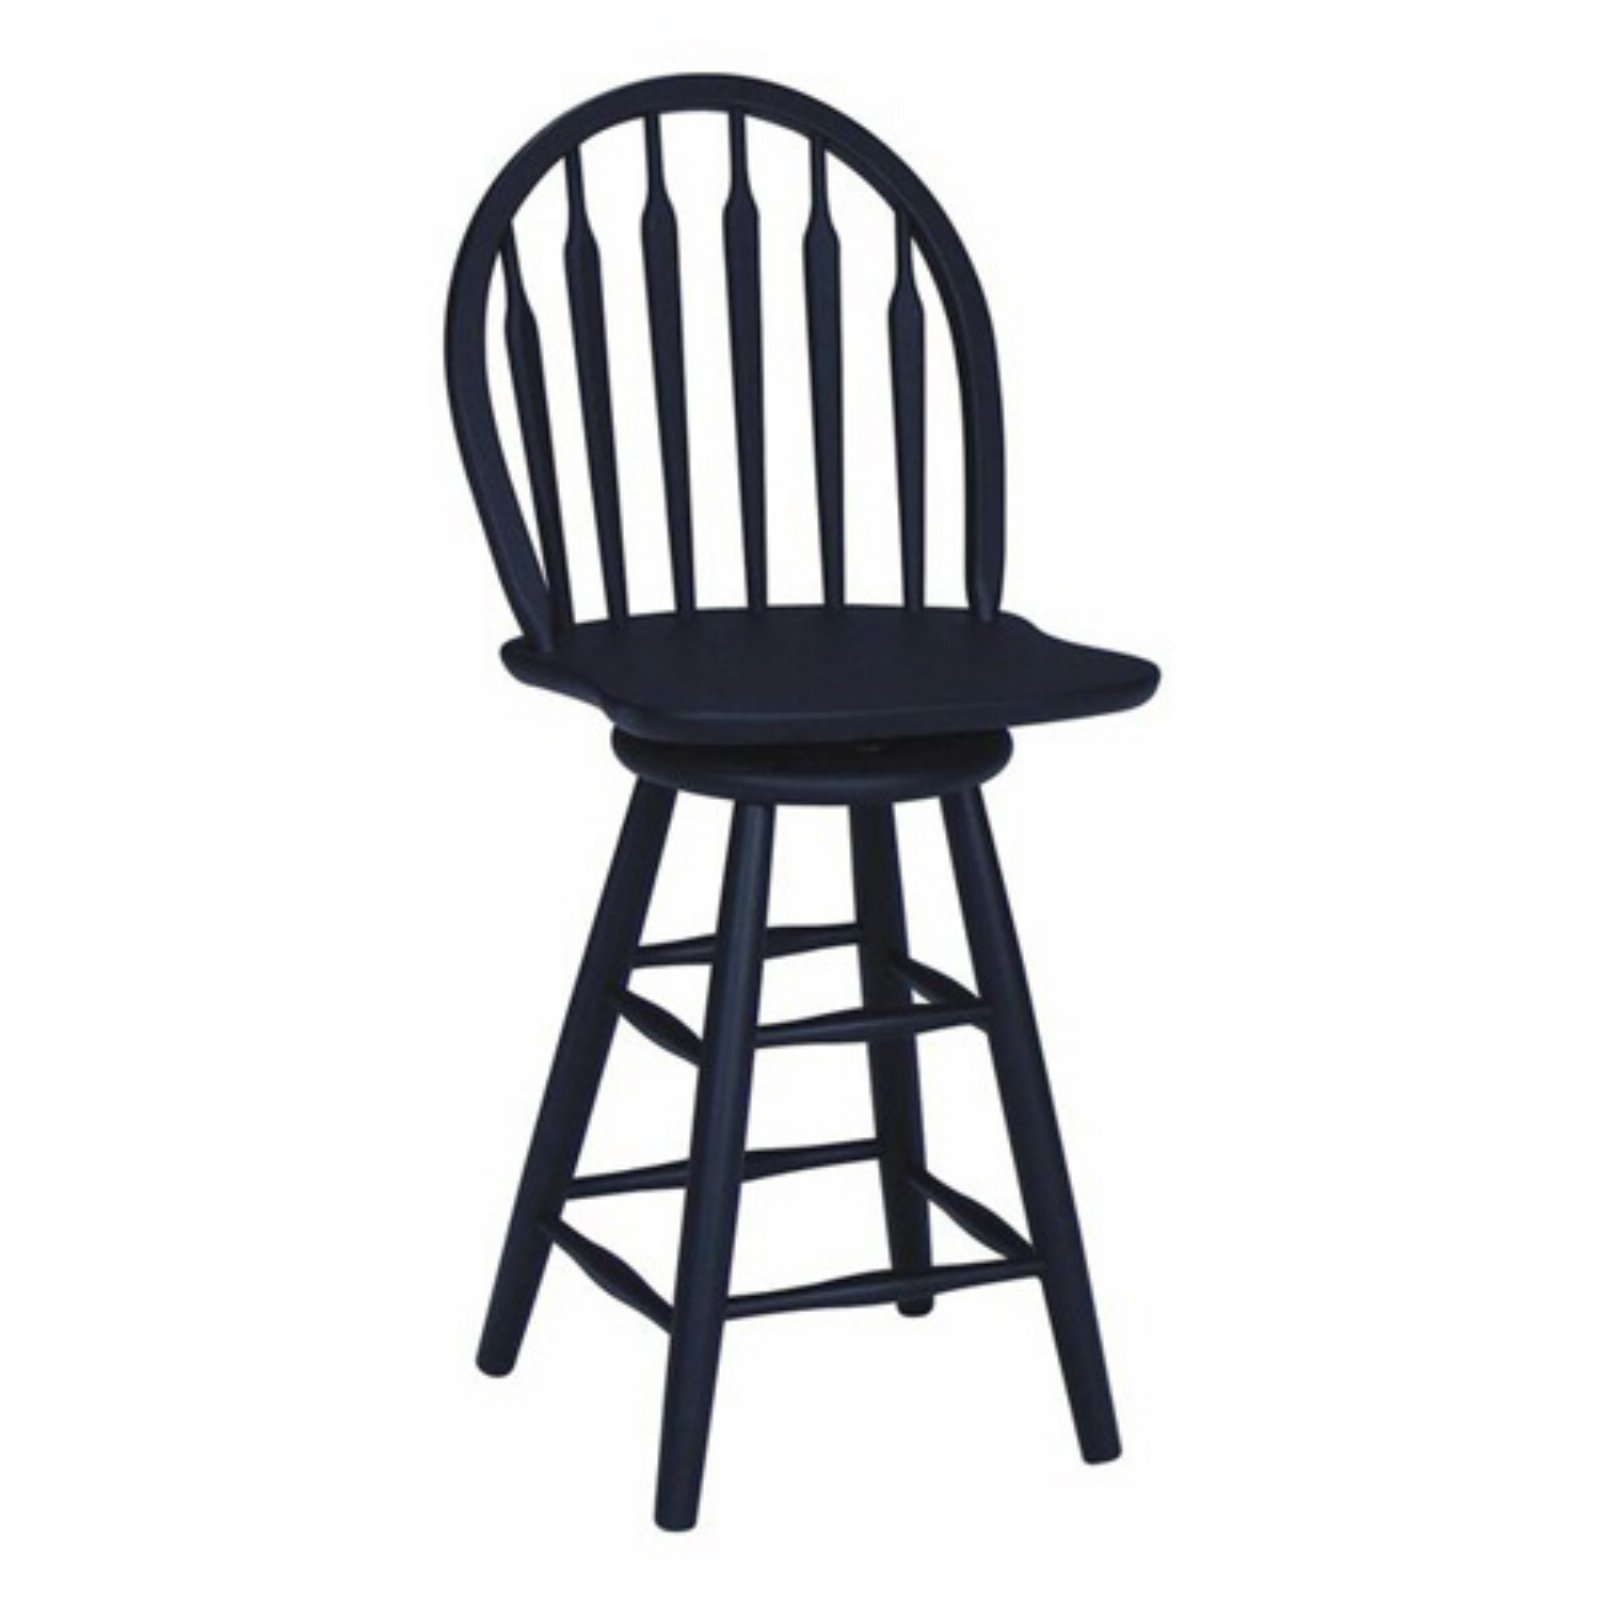 International Concepts Algood Windsor Arrow Back Swivel Counter Stool